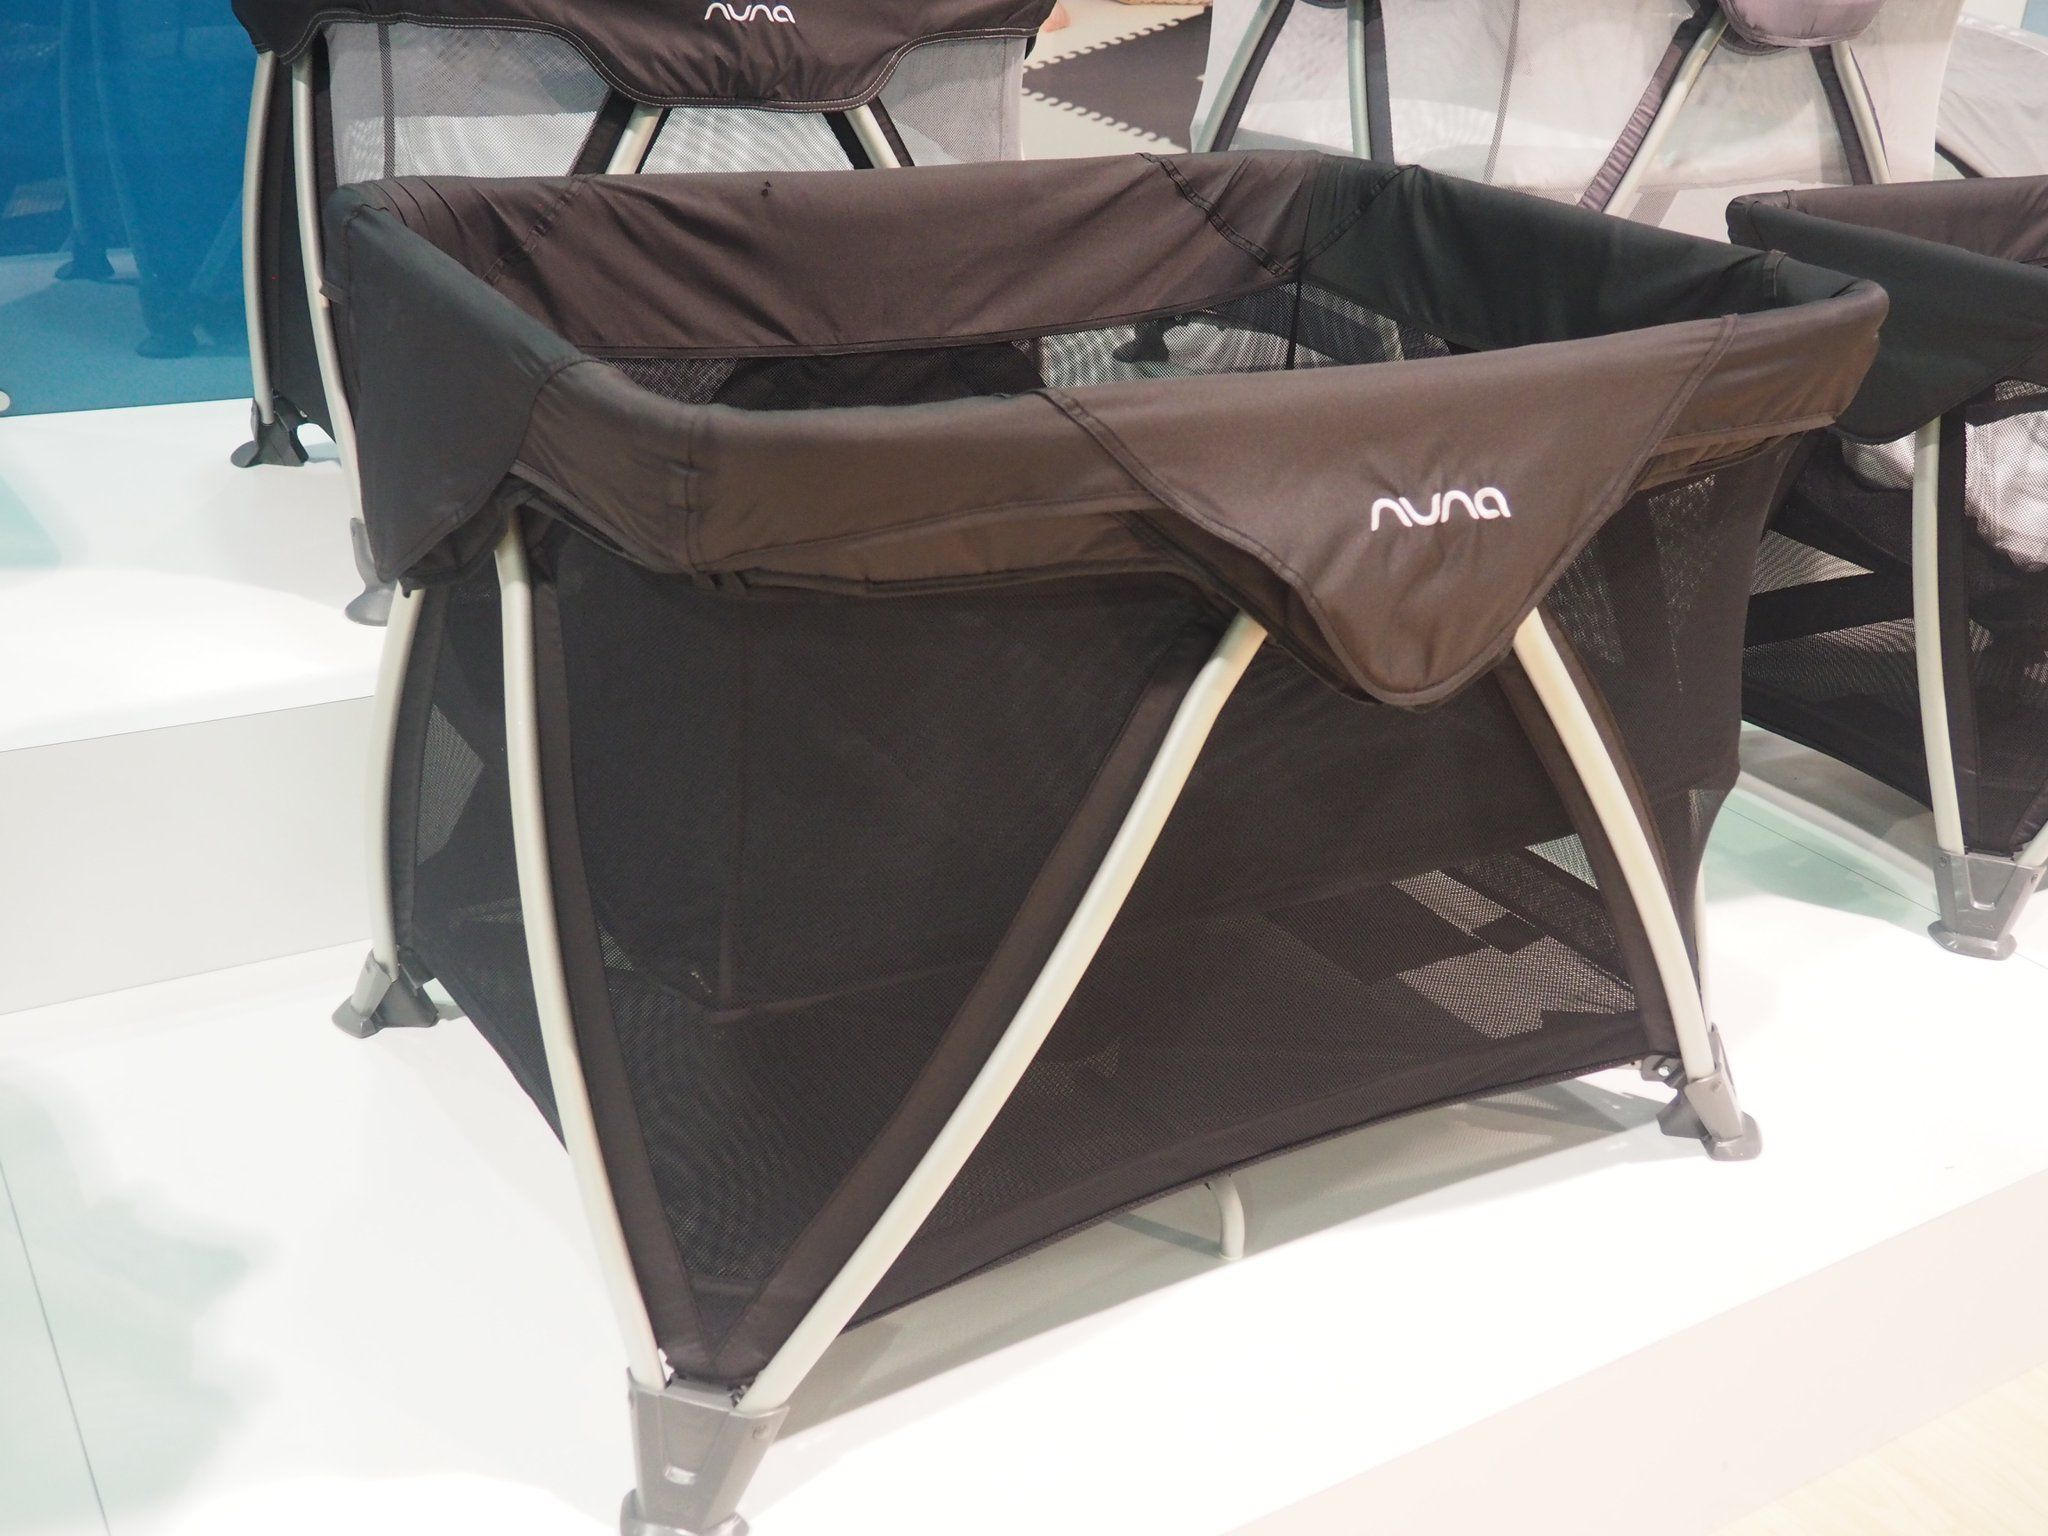 Nuna Sena Air New baby products, Baby, Baby strollers